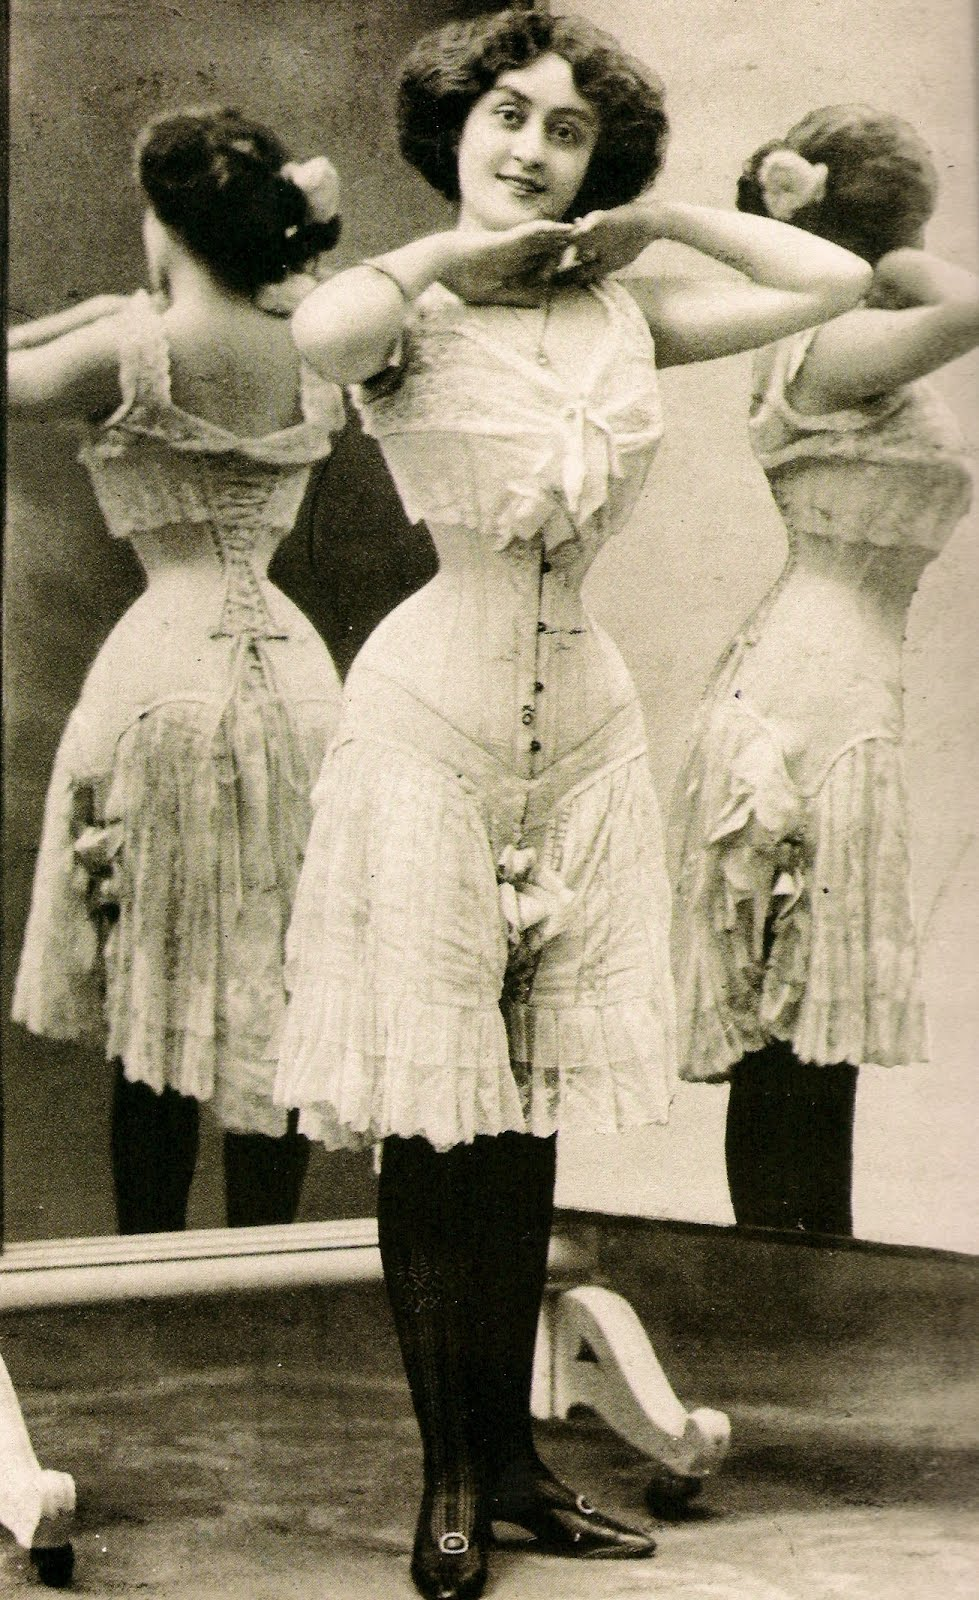 the victorian era saw changes that are favoured to women Victorian england (c 1837 – 1901) beauty standards this time featured beautiful women as: desirably plump full-figured cinched-waist ahh, the era of the corset in this time period, women cinched their waists with tight-fitting undergarments to give the perception of the desirable hourglass figure this time period lasted.